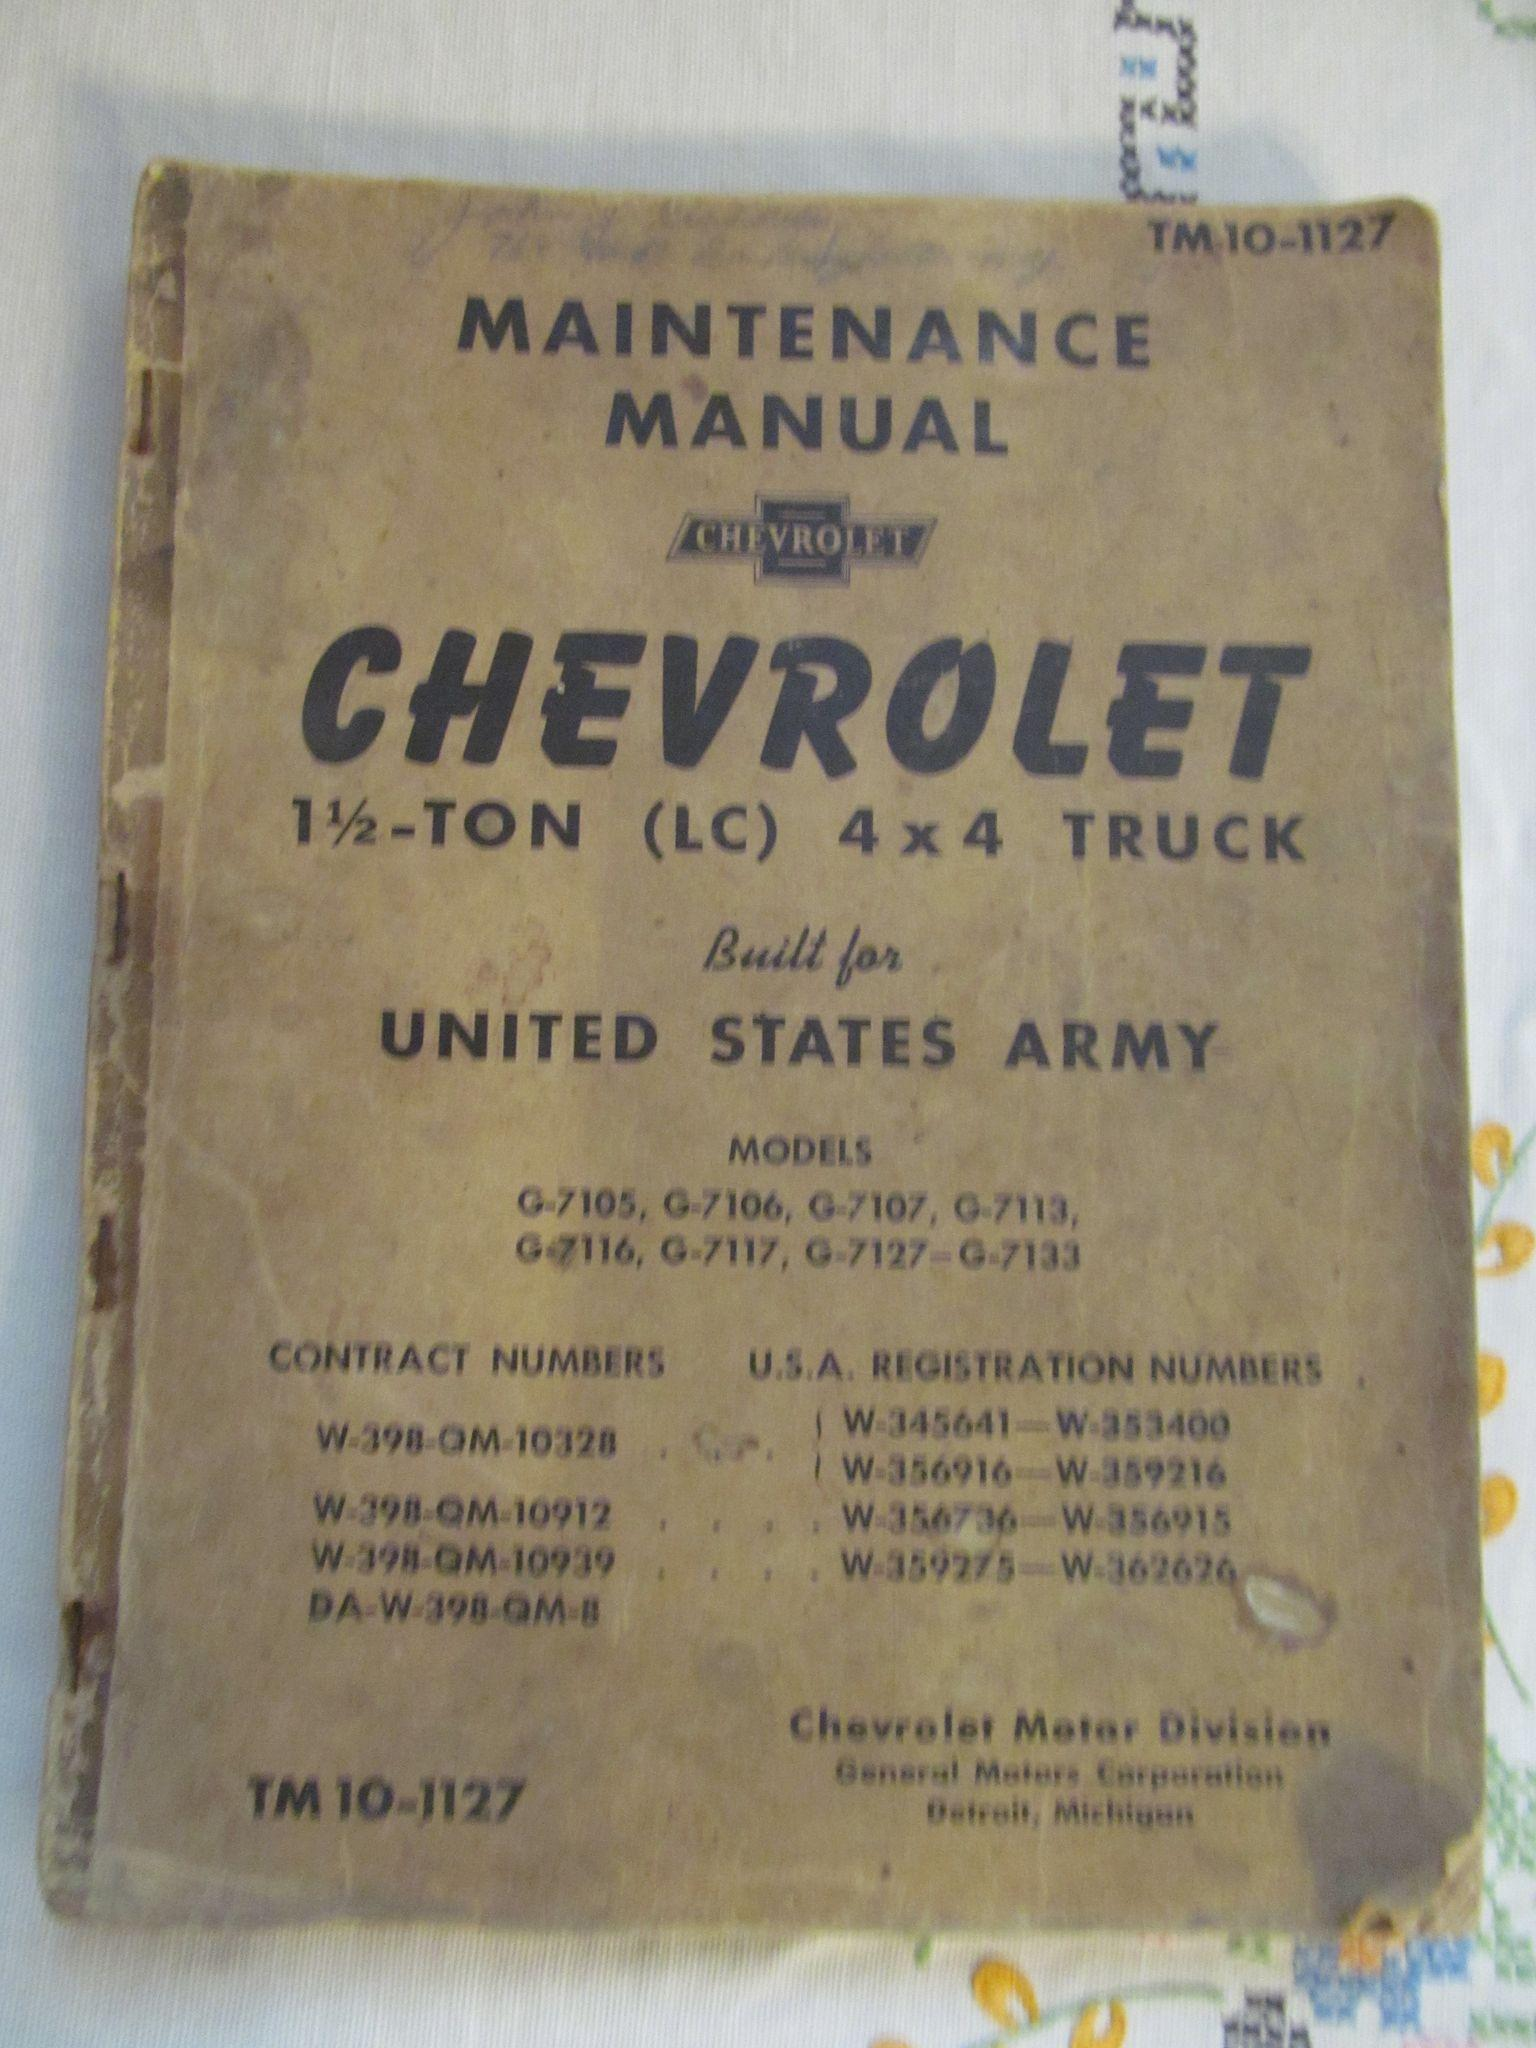 1941 Chevrolet Maintenance Manual for 4 X 4 Trucks Built for United States Army